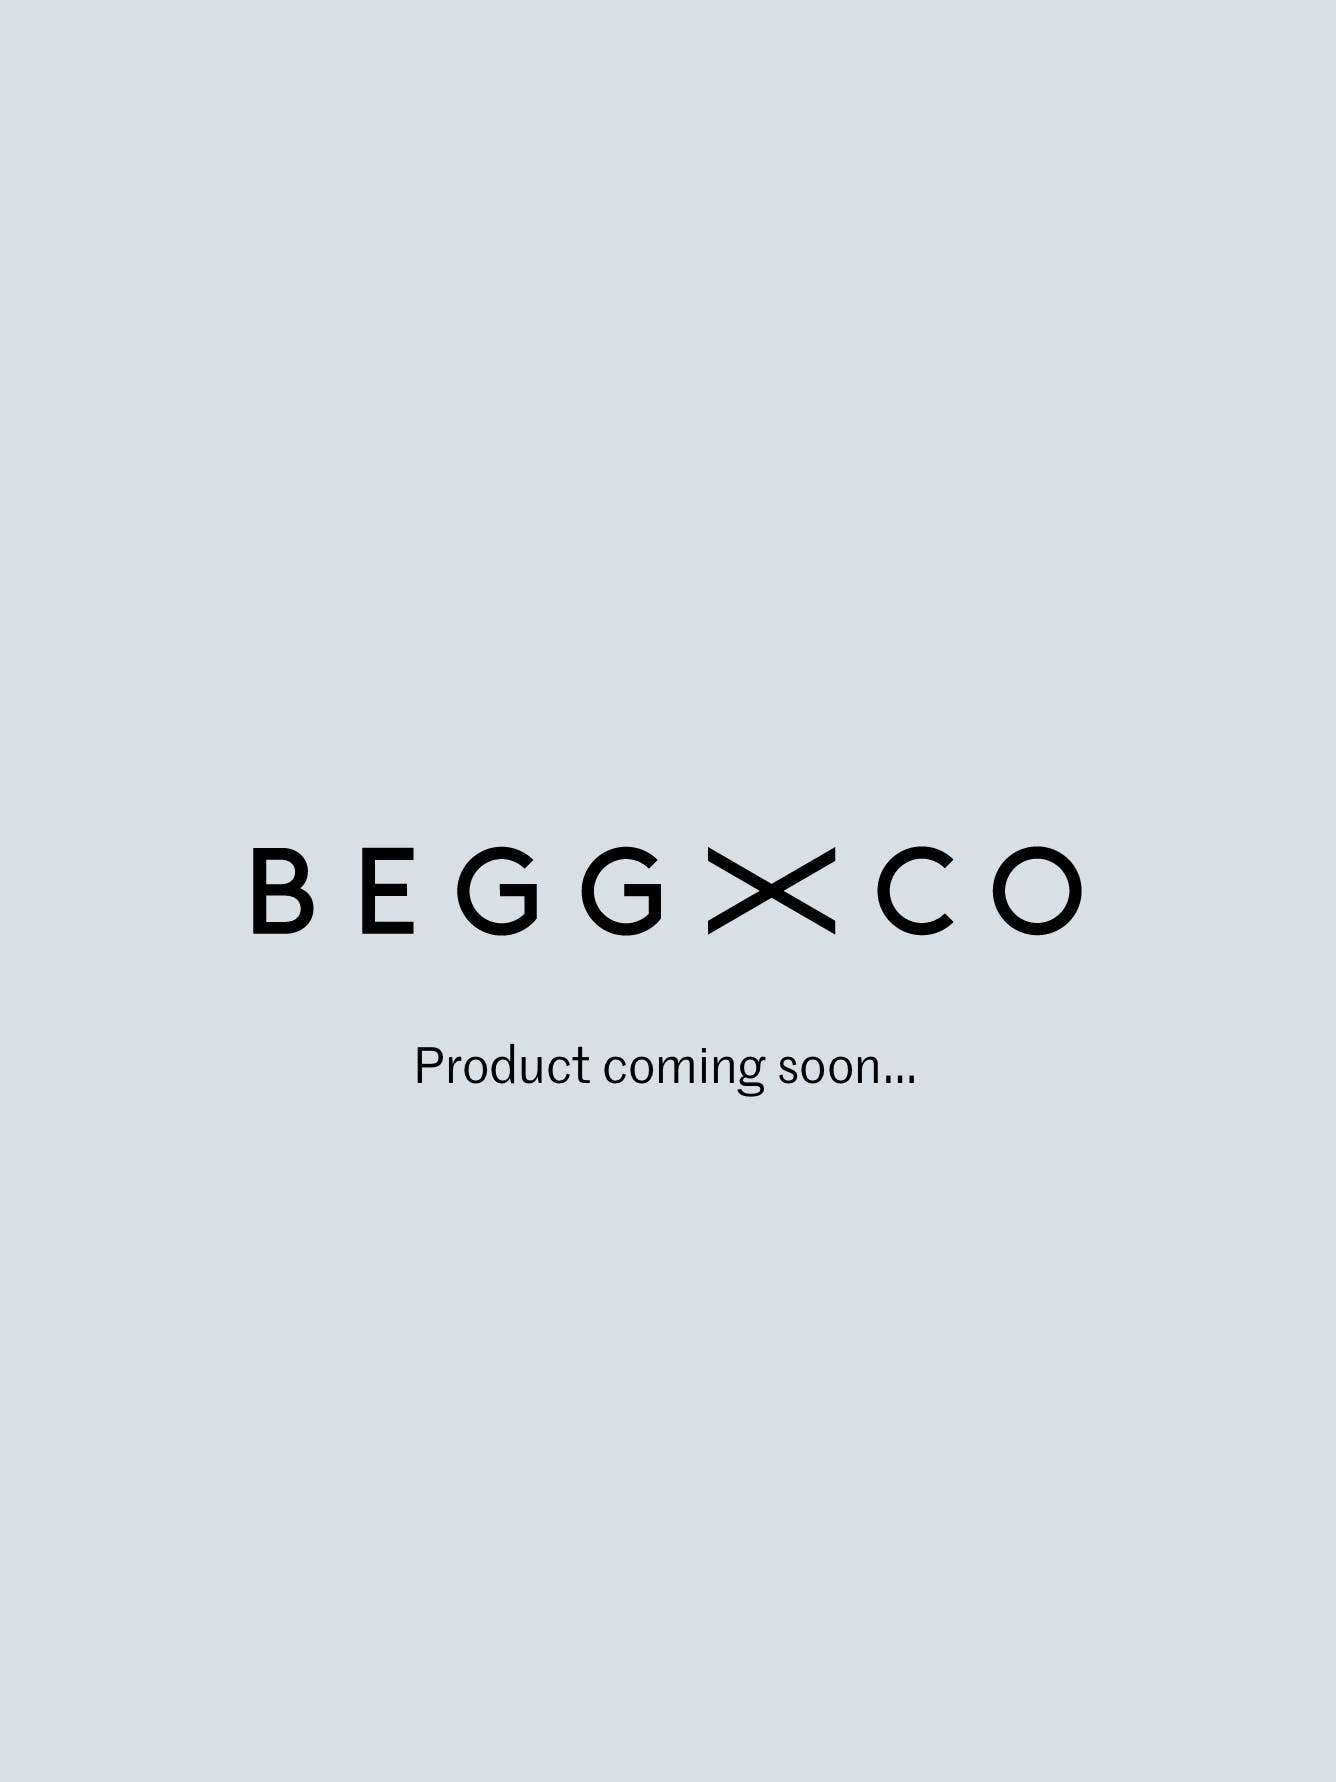 Strath Ikat Stripe Lambswool Cashmere Throw Monochrome Detail | Begg x Co